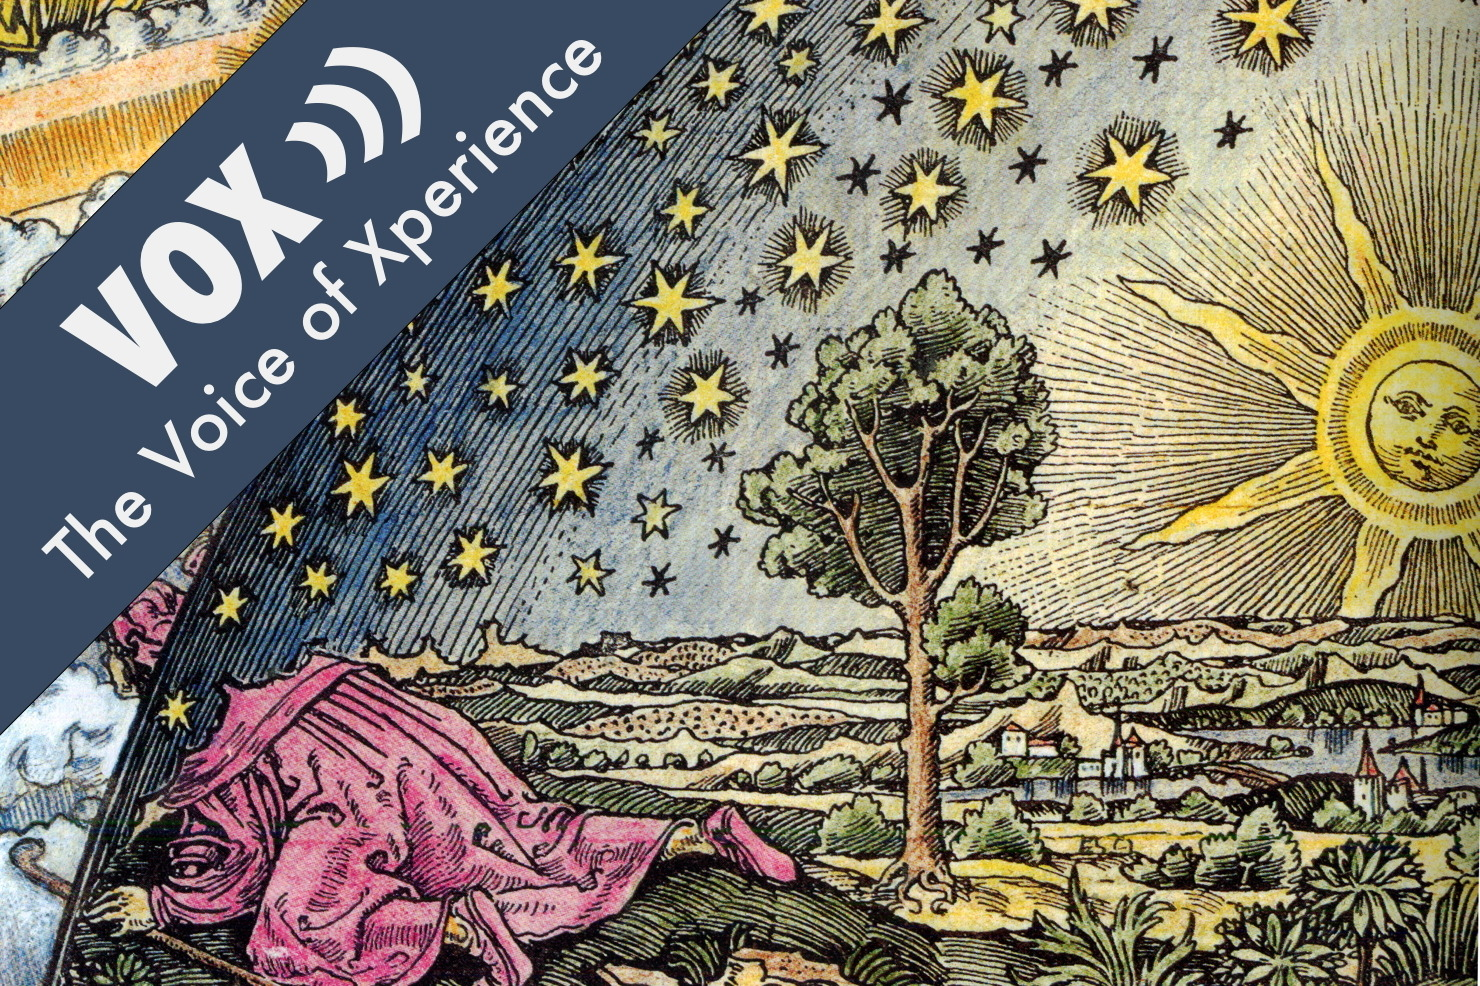 From Cosimo to Cosmos: The Medici Effect in Culture and Technology, a VOX column by Wade Roush